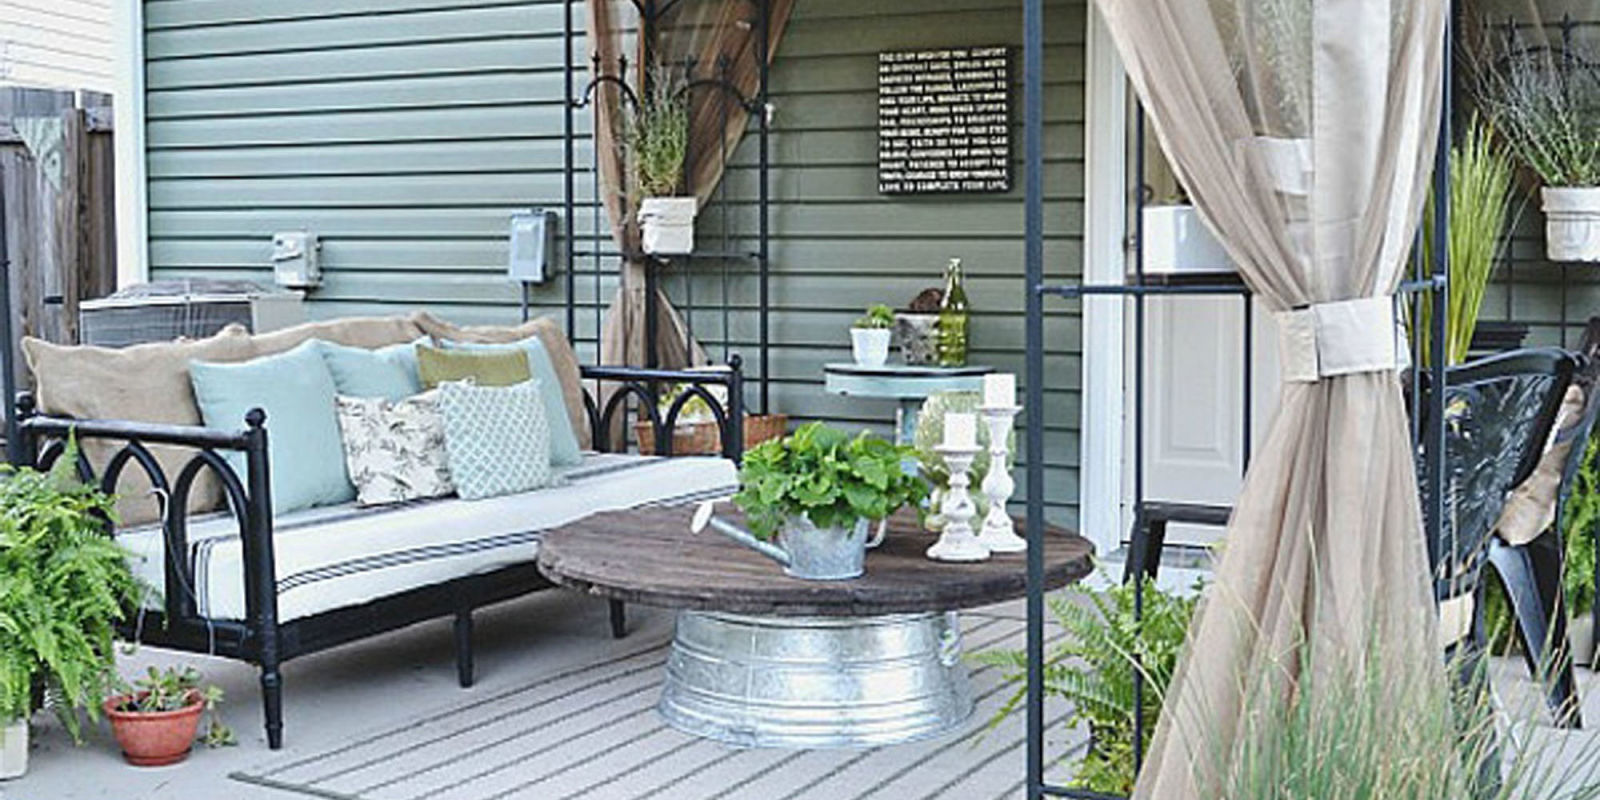 Patio Furnishing Ideas Liz Marie Blog Patio Before And After Patio Decorating Ideas